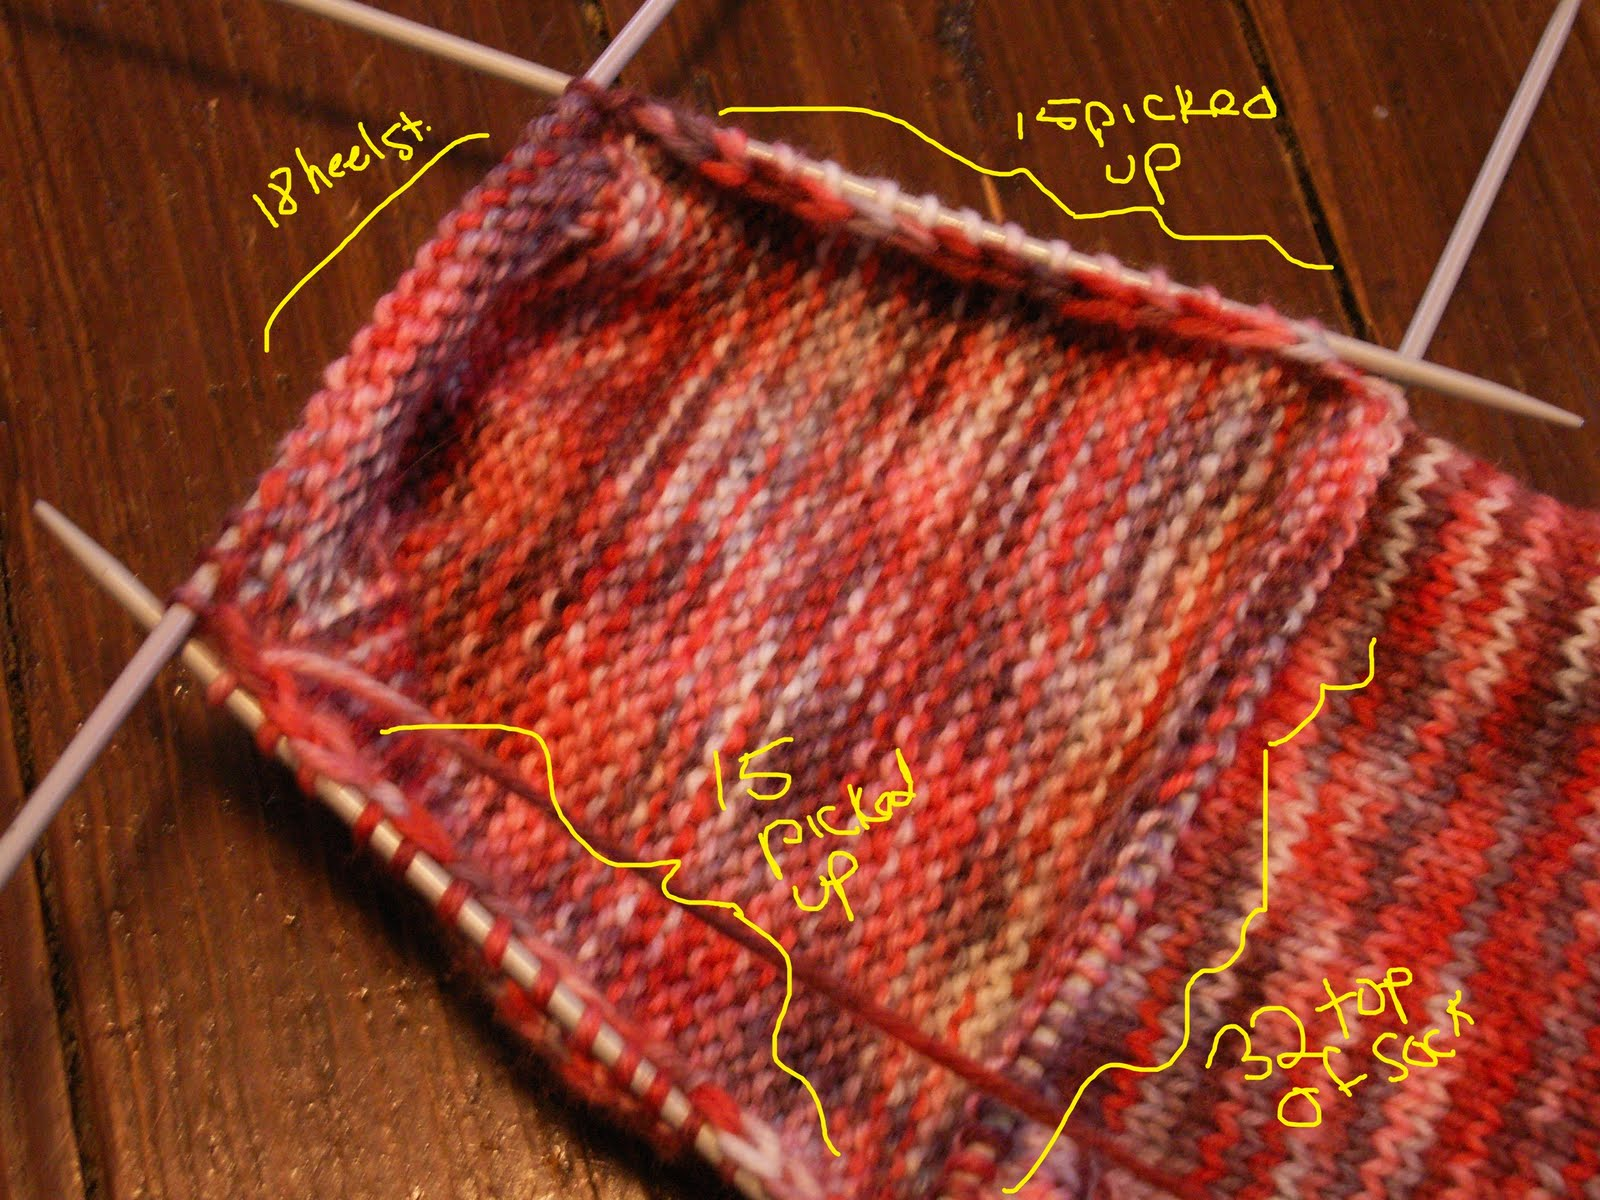 Picking Up Stitches When Knitting : Mistress of Knitting: Knitting Top-Down Socks, Part 3 - Picking up stitches f...